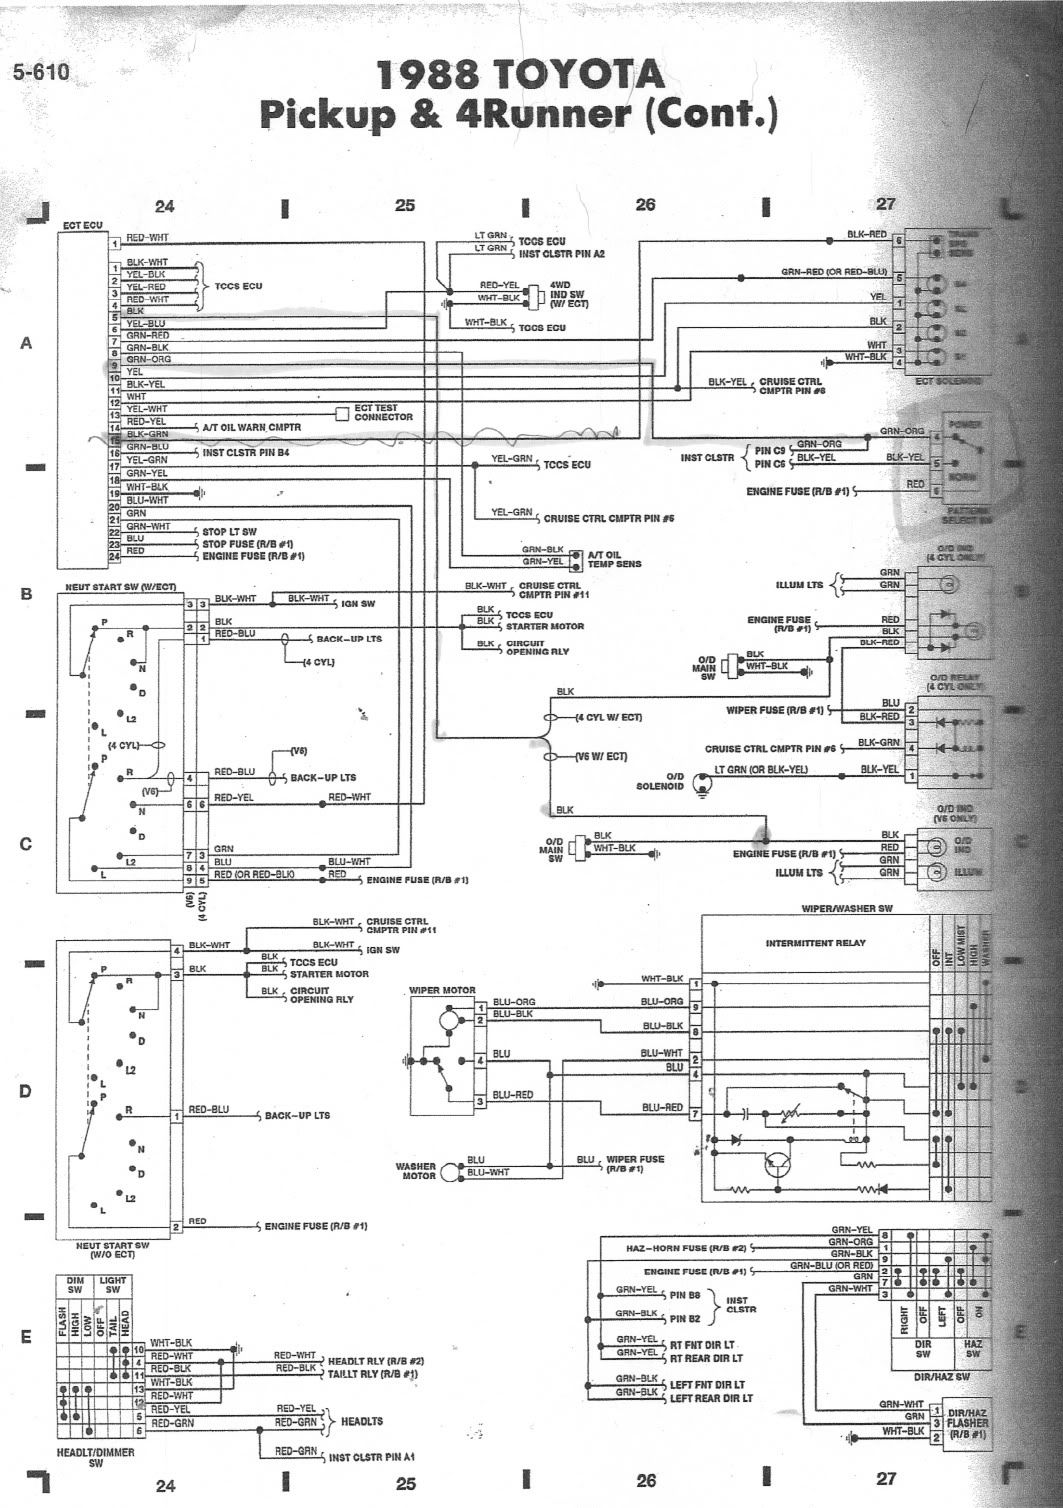 '88 3VZE 5-speed wiring diagram help. - Page 2 - YotaTech Forums. '